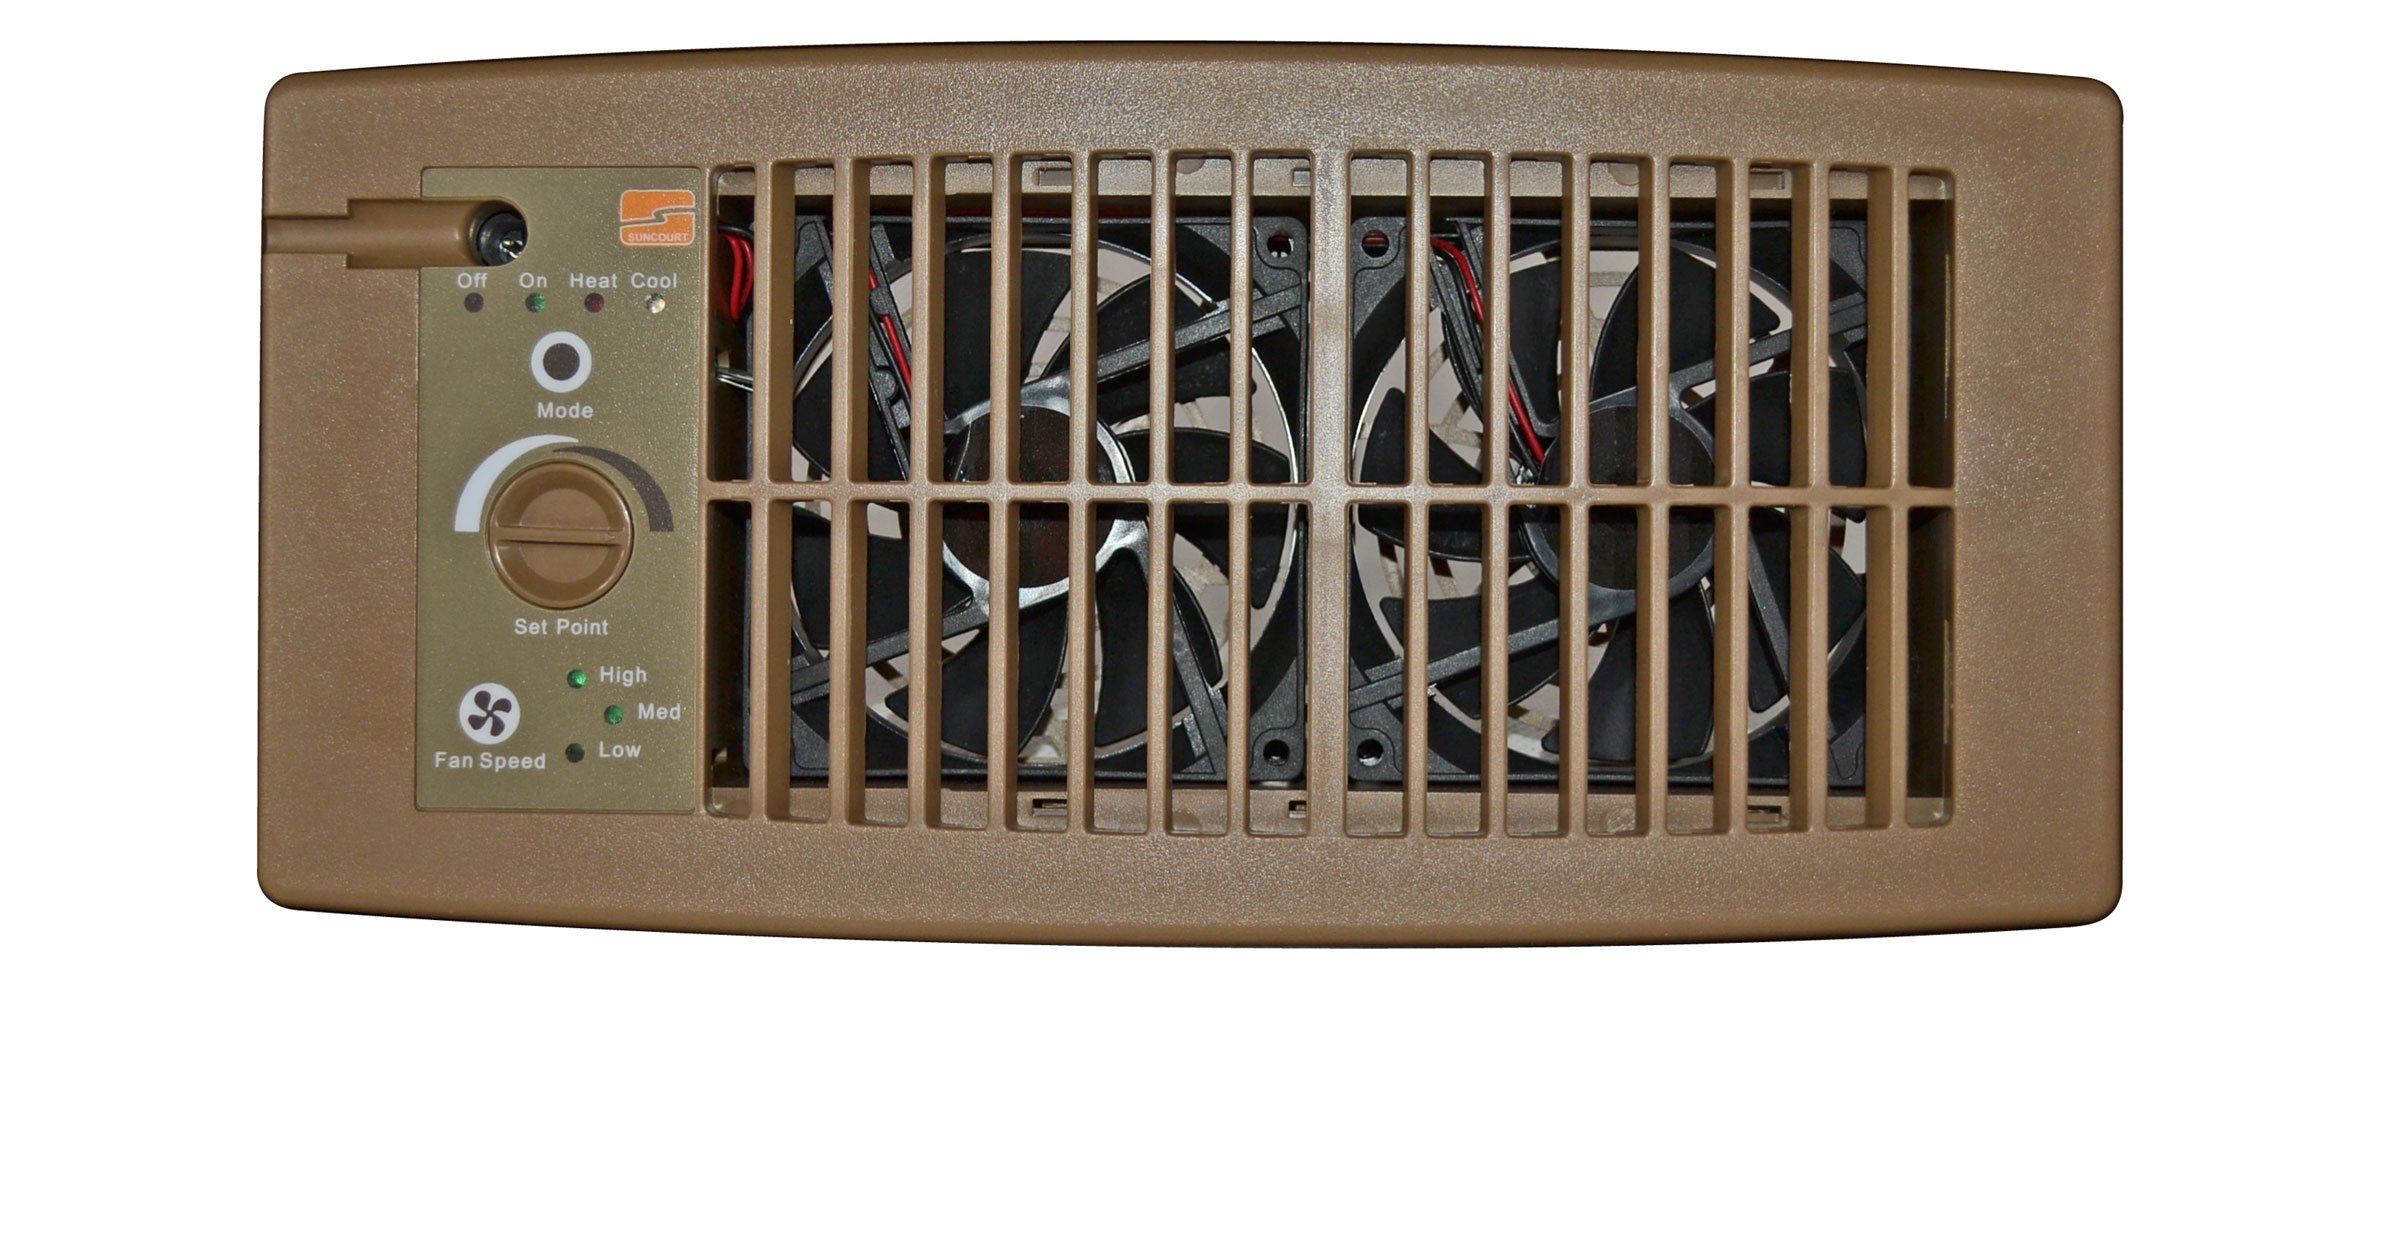 Suncourt hc500 b flush fit brown register booster fan only for How to improve airflow in vents